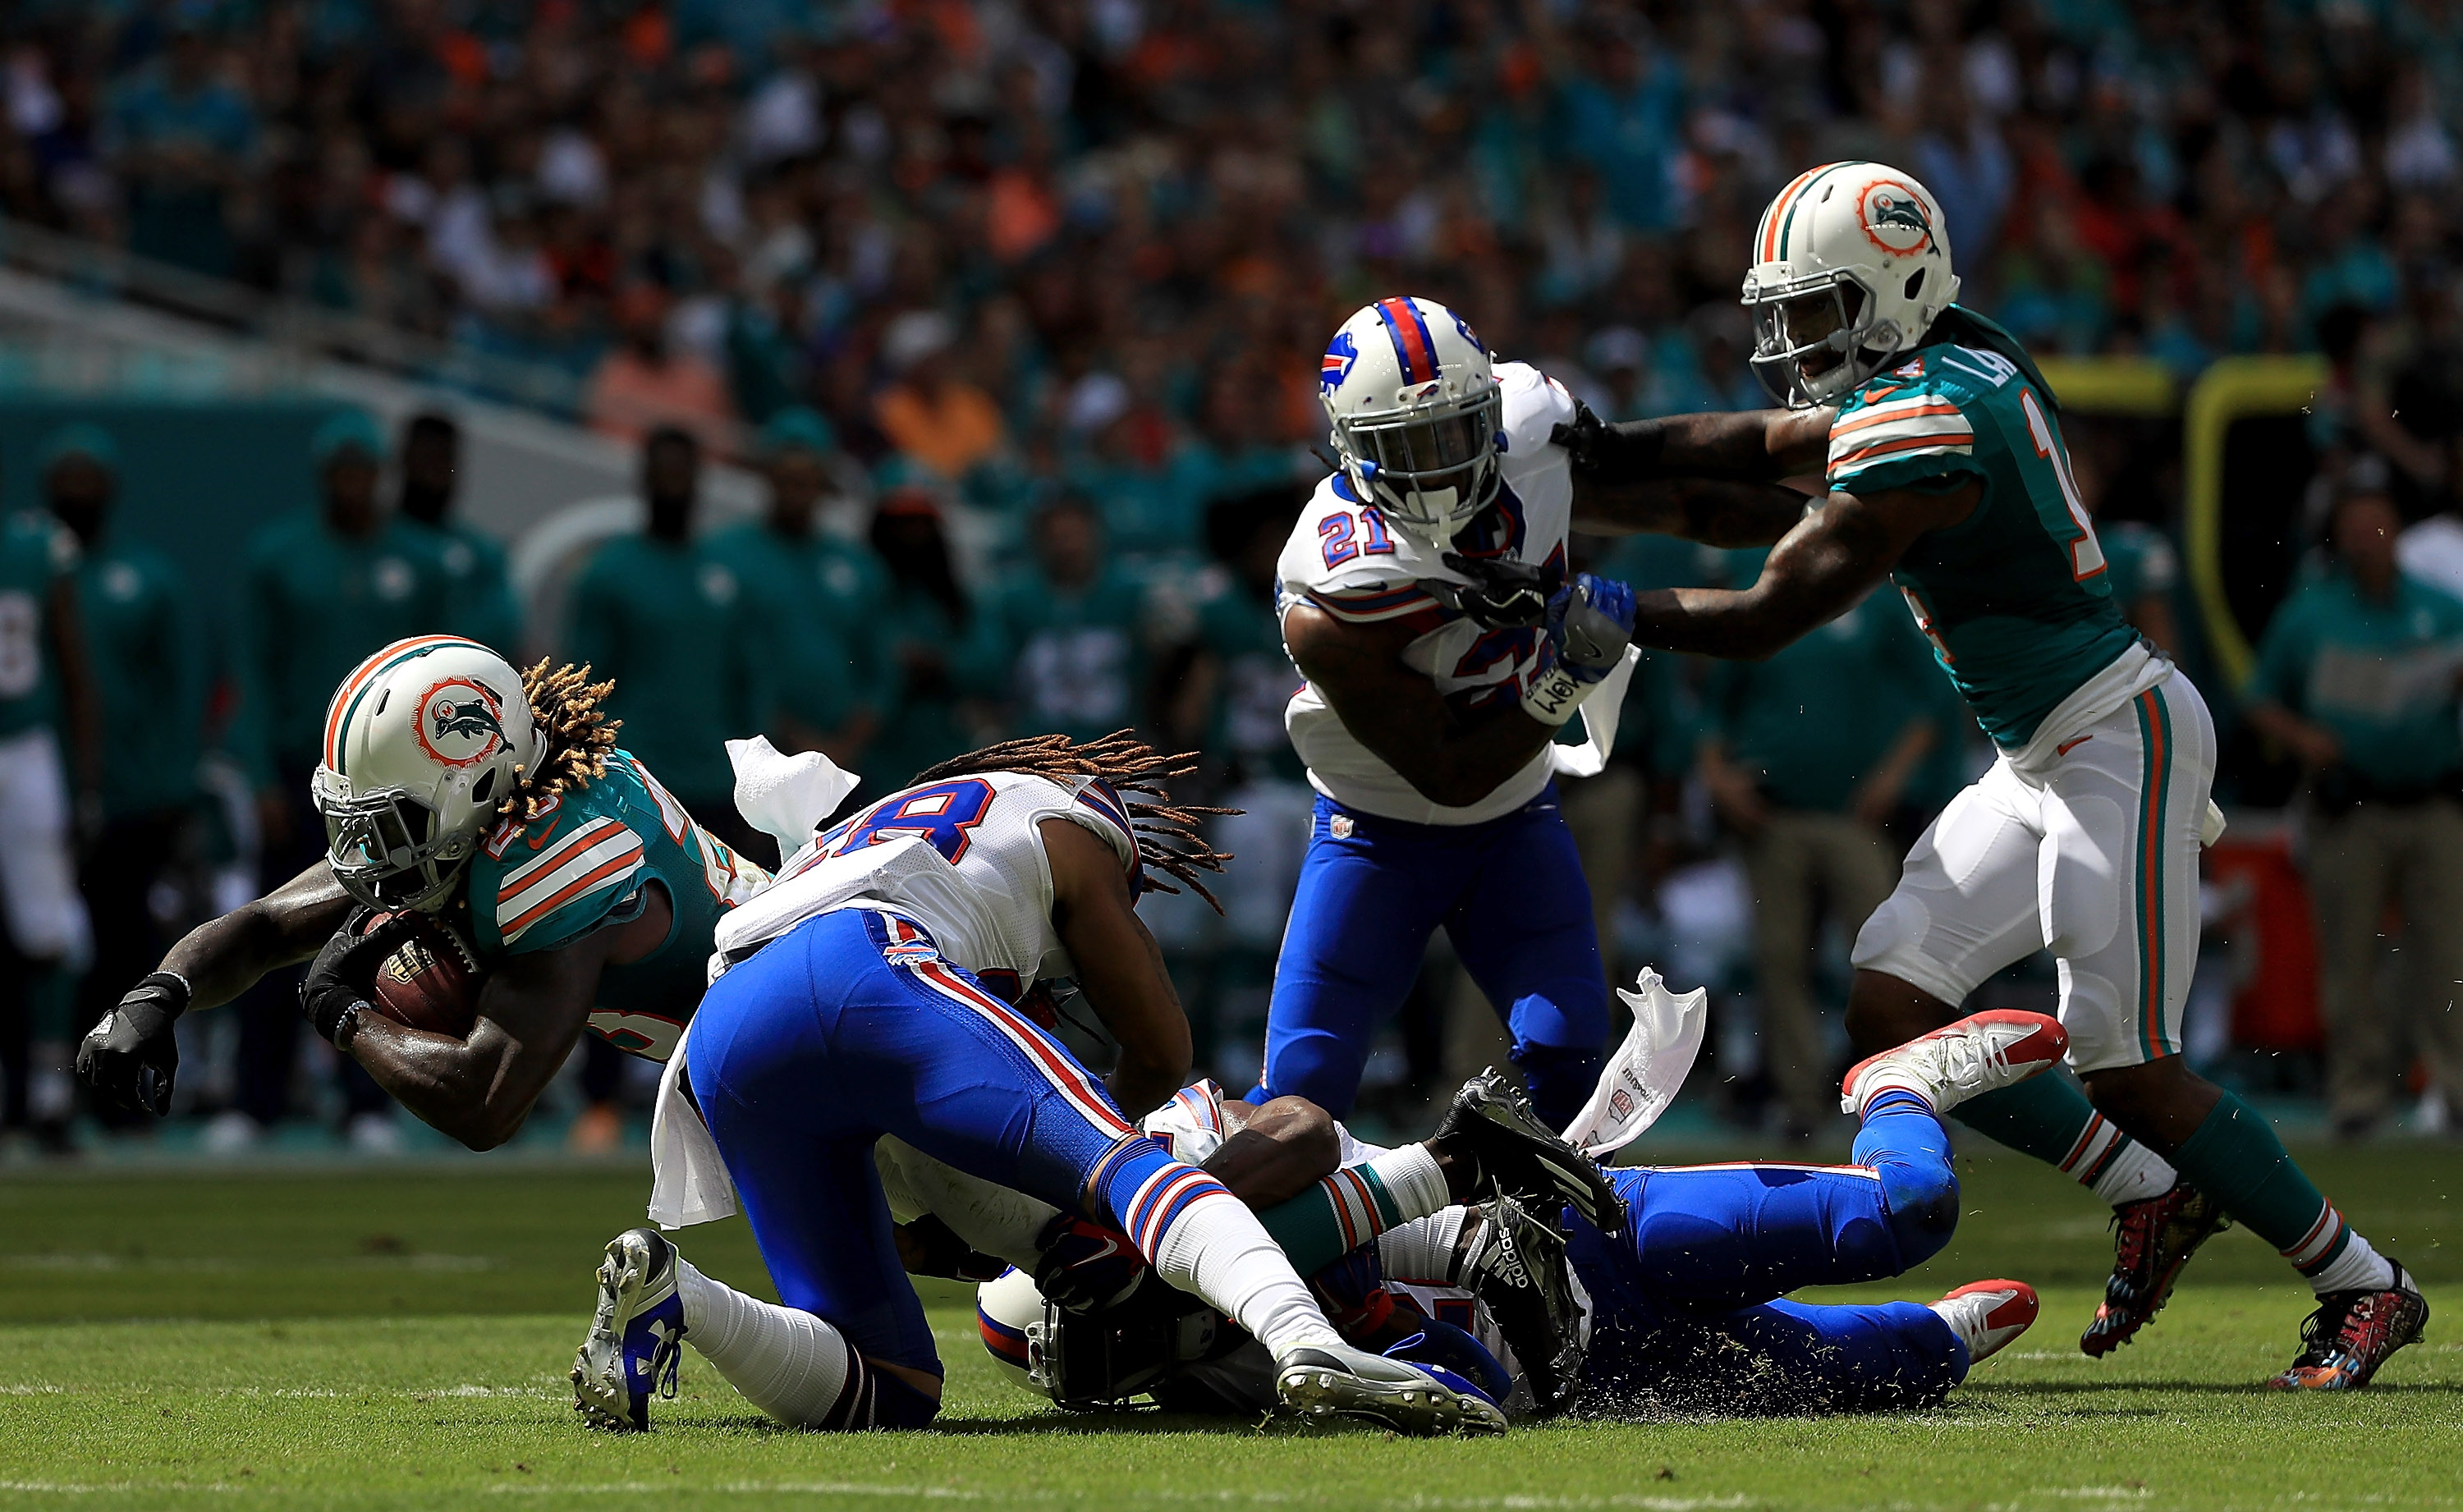 MIAMI GARDENS, FL - OCTOBER 23:  Jay Ajayi #23 of the Miami Dolphins rushes during a game against the Buffalo Bills on October 23, 2016 in Miami Gardens, Florida.  (Photo by Mike Ehrmann/Getty Images)